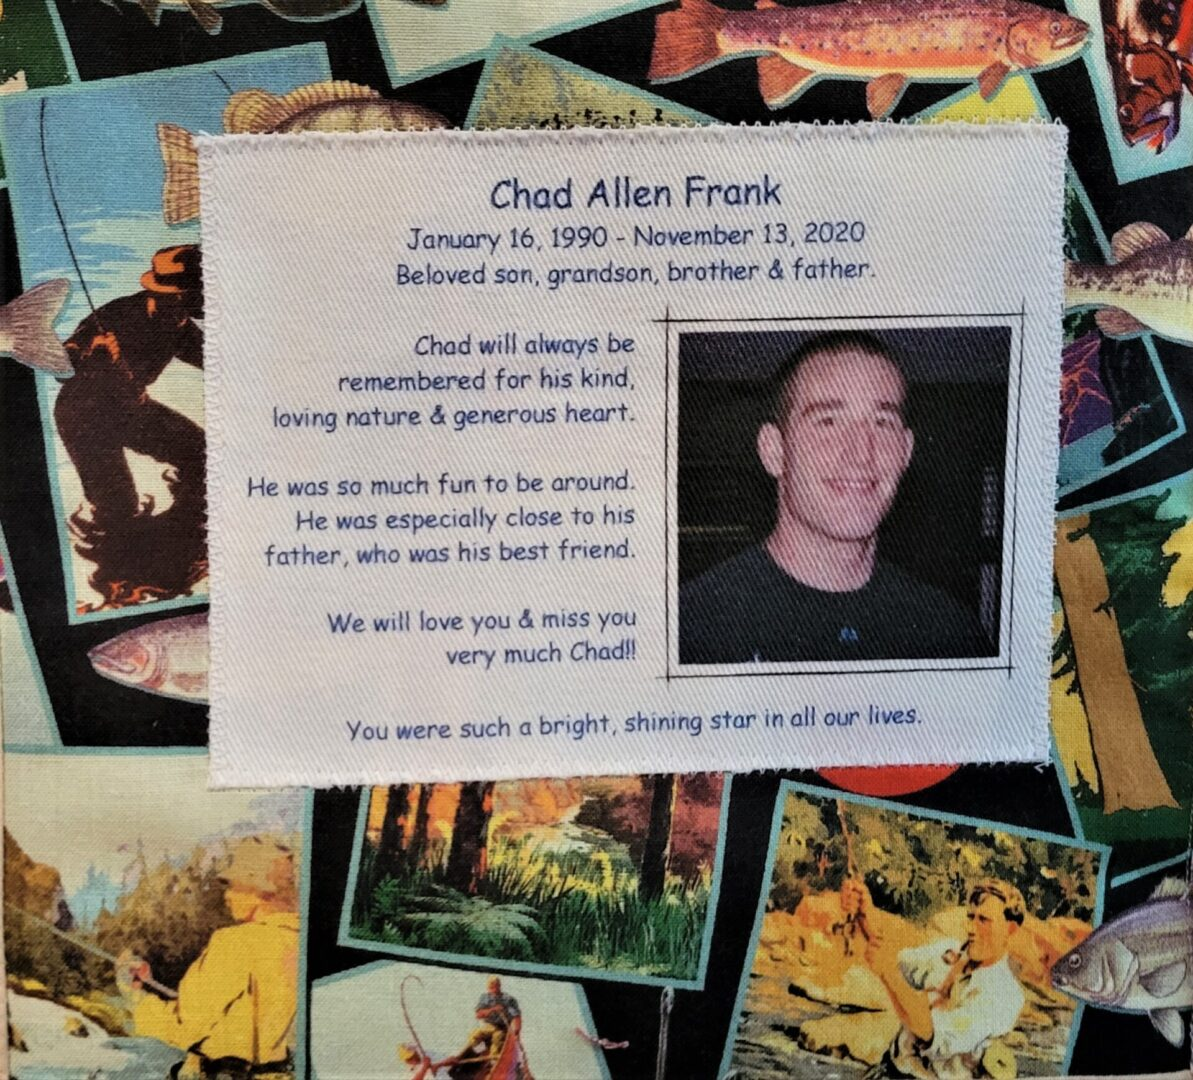 IN MEMORY OF CHAD ALLEN FRANK - JANUARY 16, 1990 - NOVEMBER 13, 2020